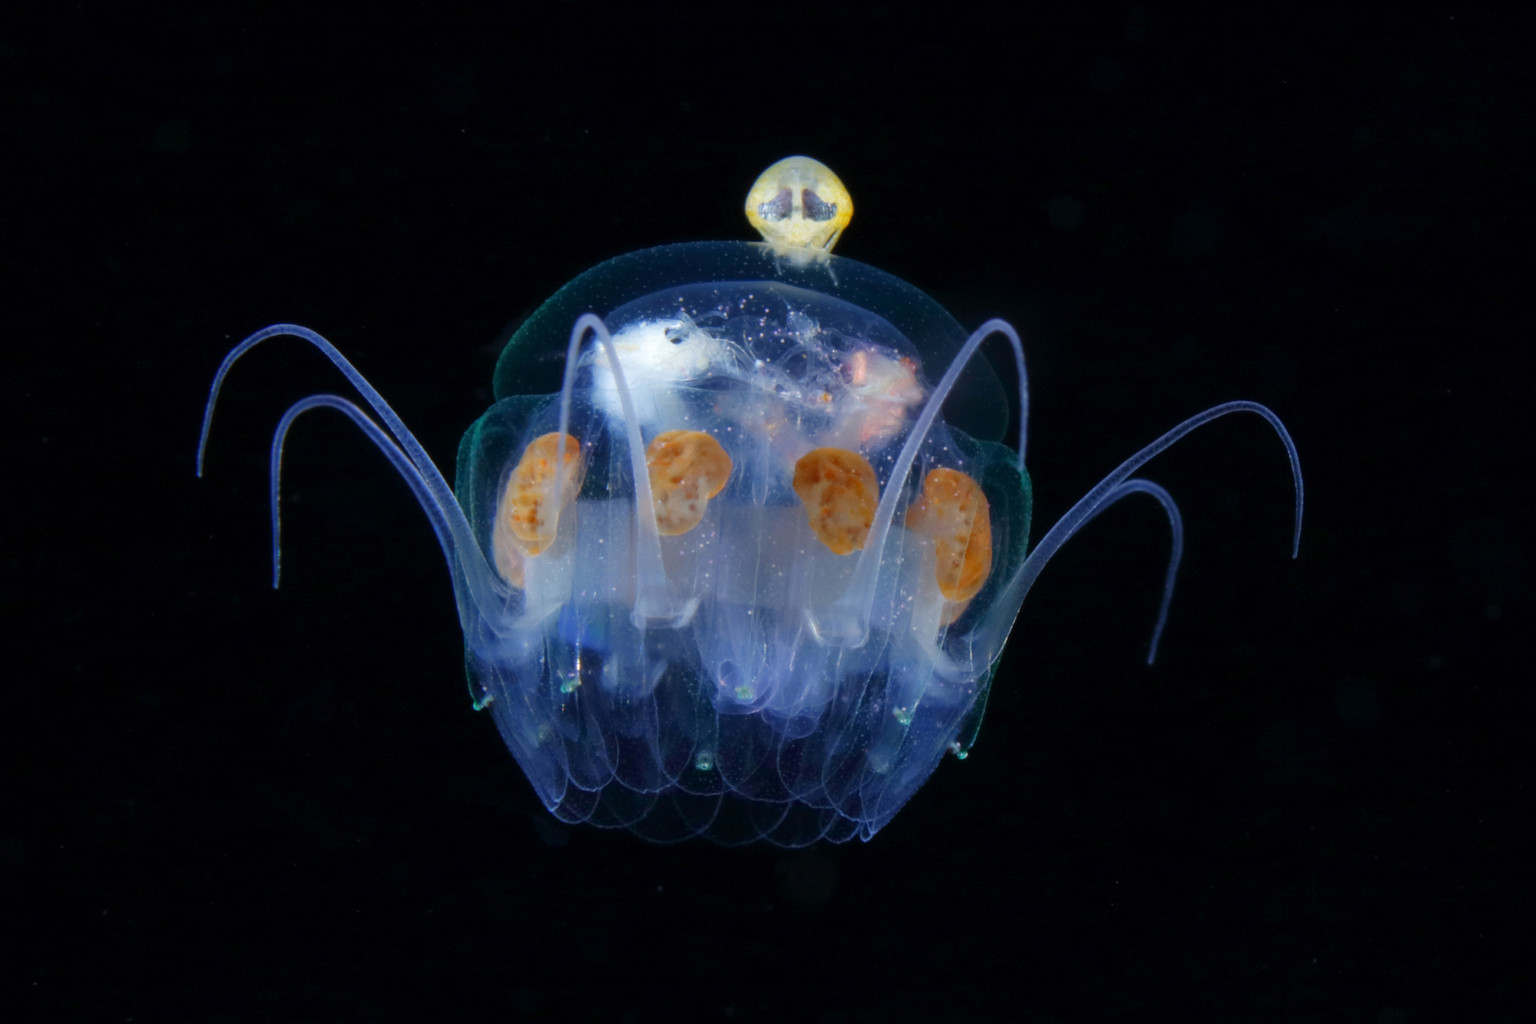 Hyperiidea riding the jellyfish. It's lke an alien maneuvering a spaceship/Jellyfish umbrella width 20mm